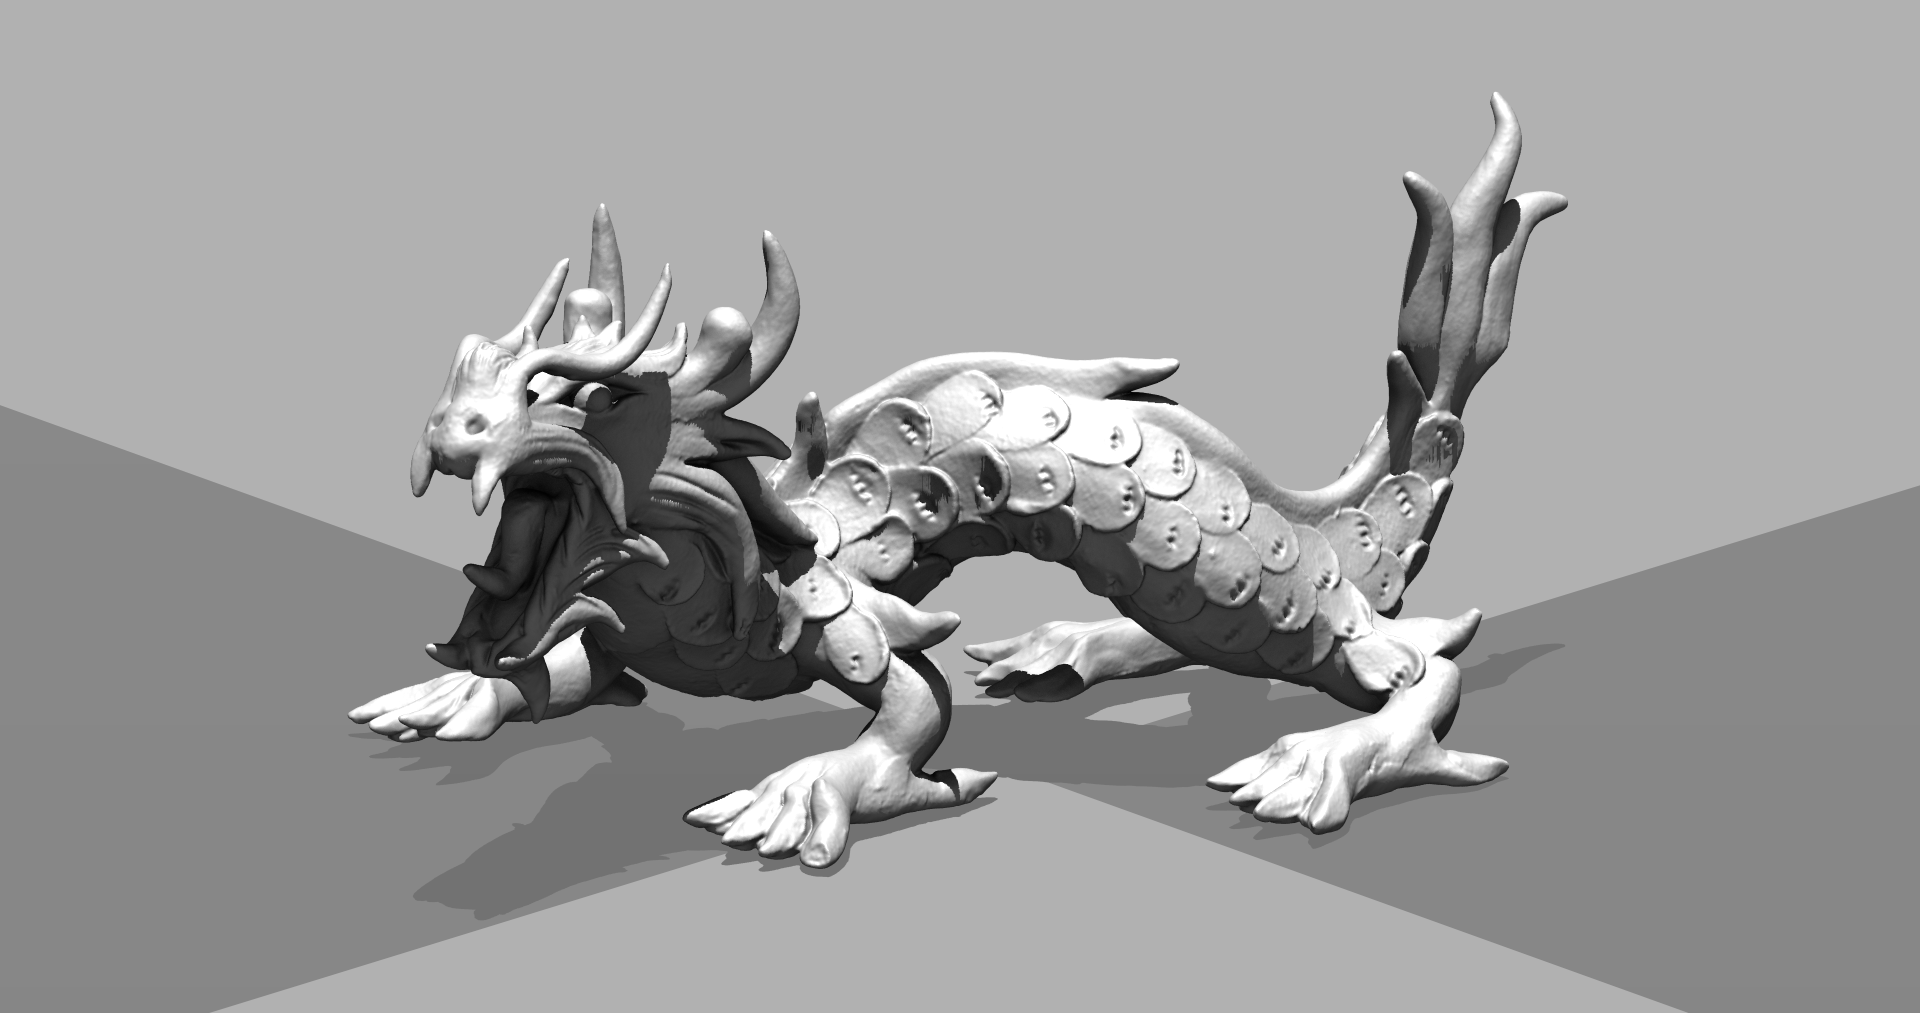 The dragon.vdb dataset rendered on the GPU as a levelset.